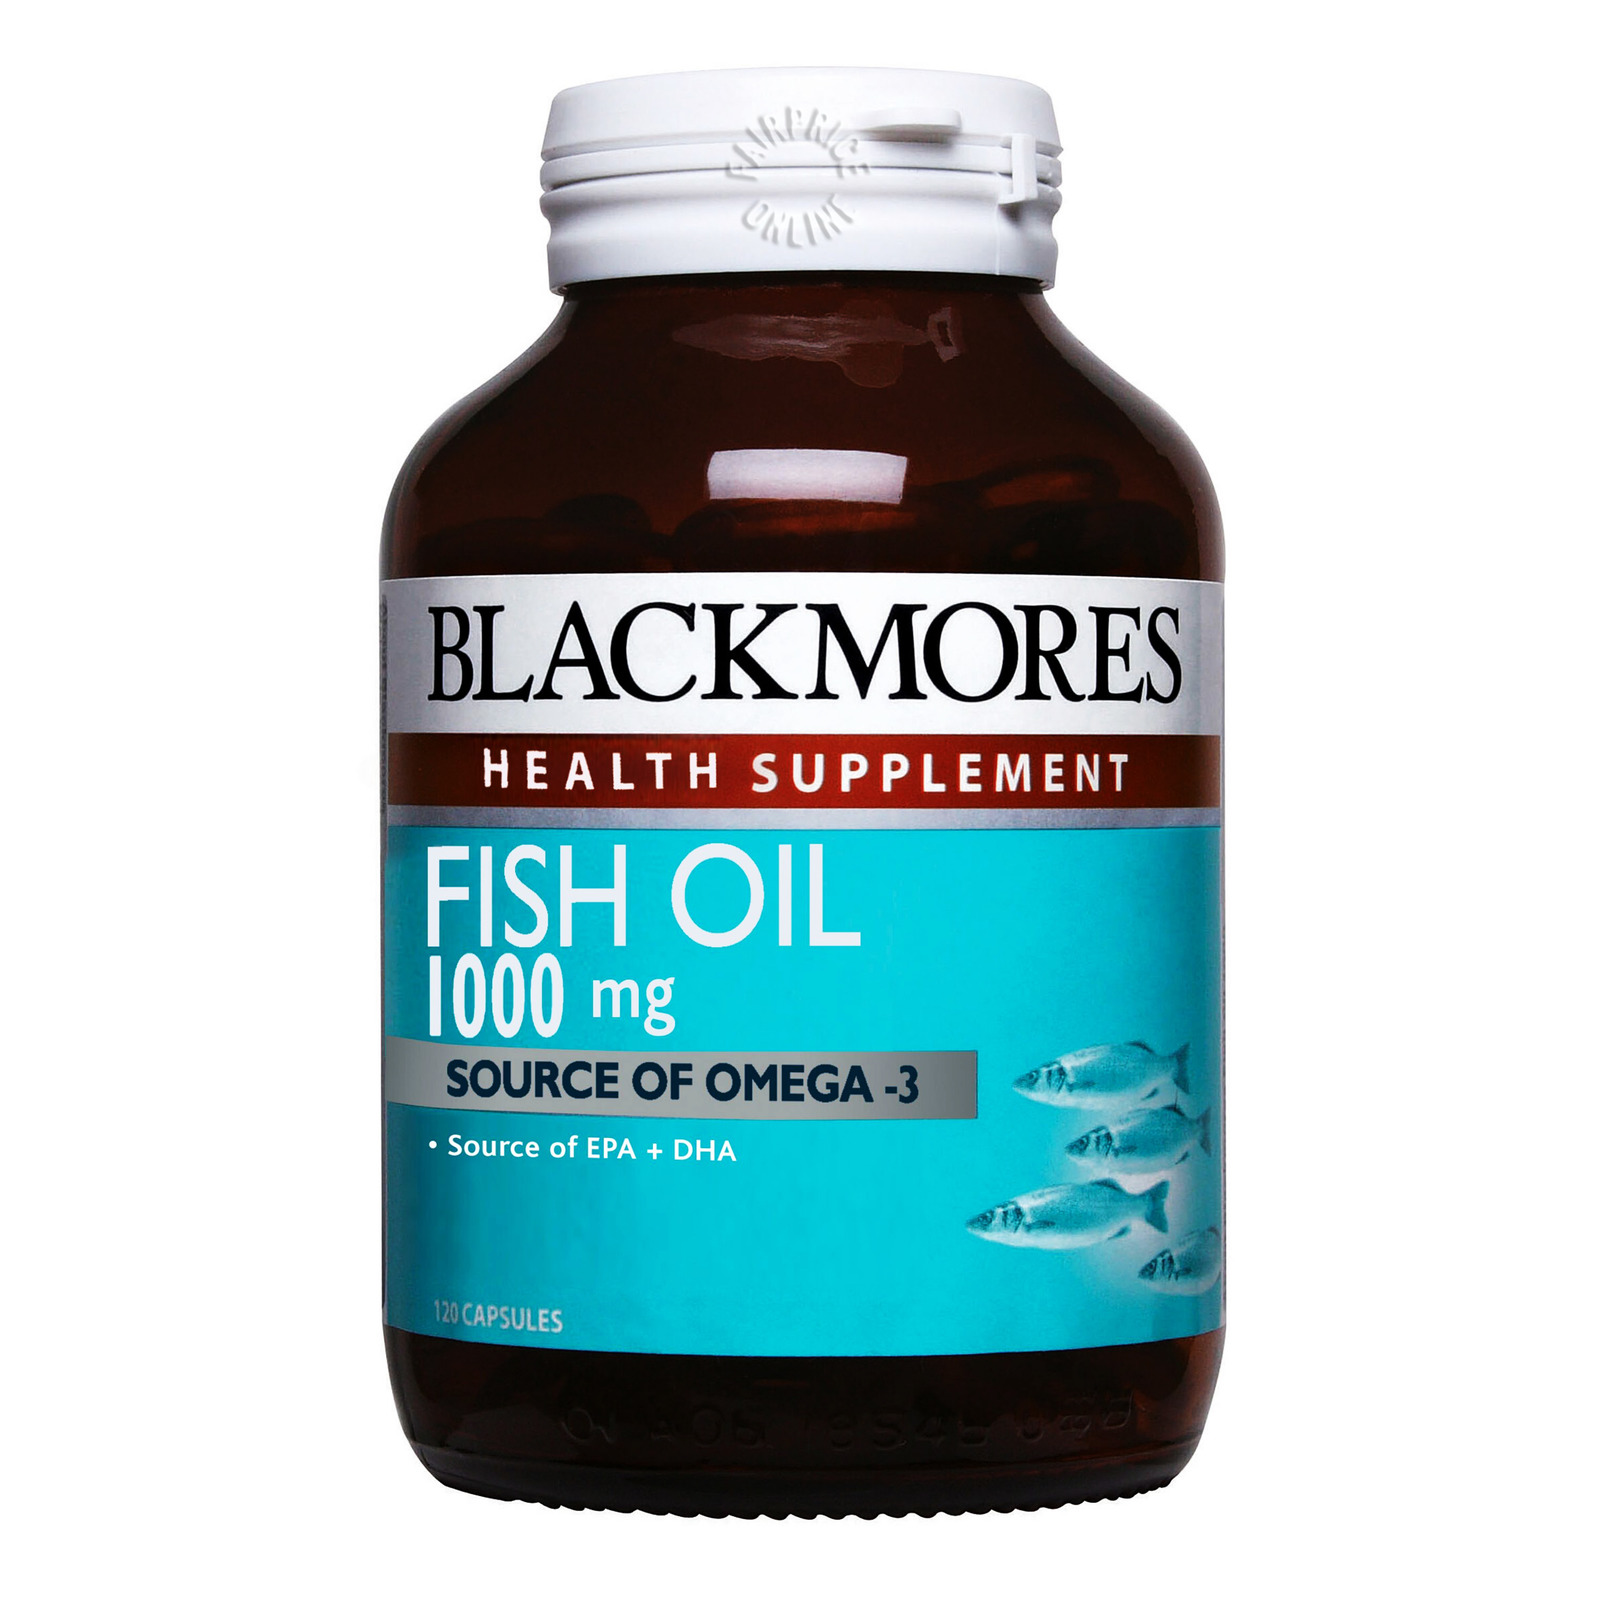 Blackmores Dietary Supplement - Fish Oil 1000